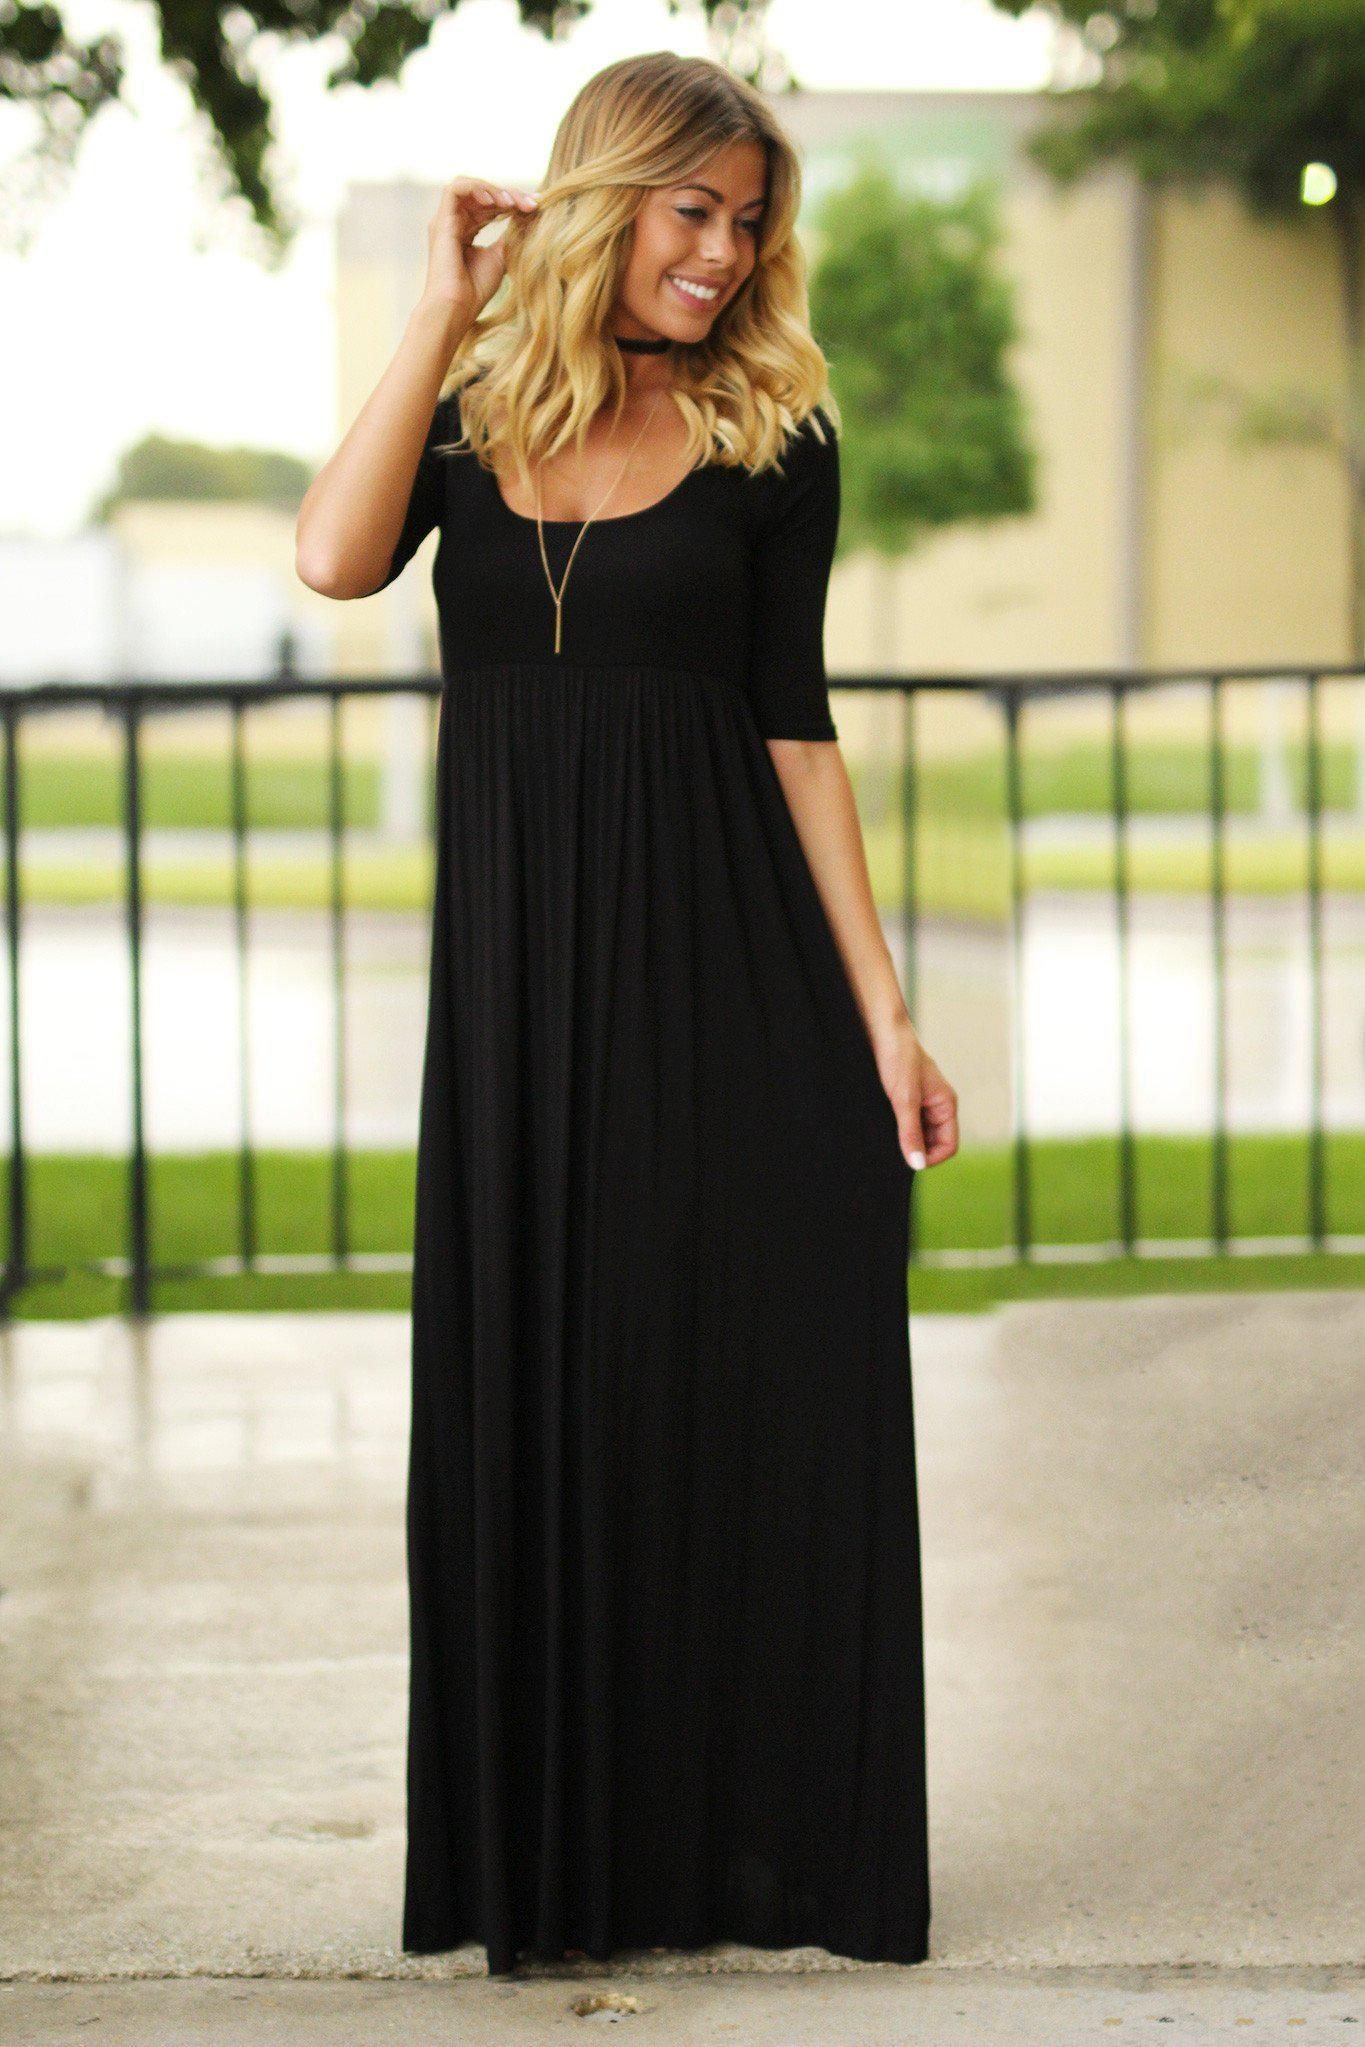 Black Casual Maxi Dress With 3 4 Sleeves Maxi Dress Long Black Dress Maxi Dresses Casual [ 2047 x 1365 Pixel ]